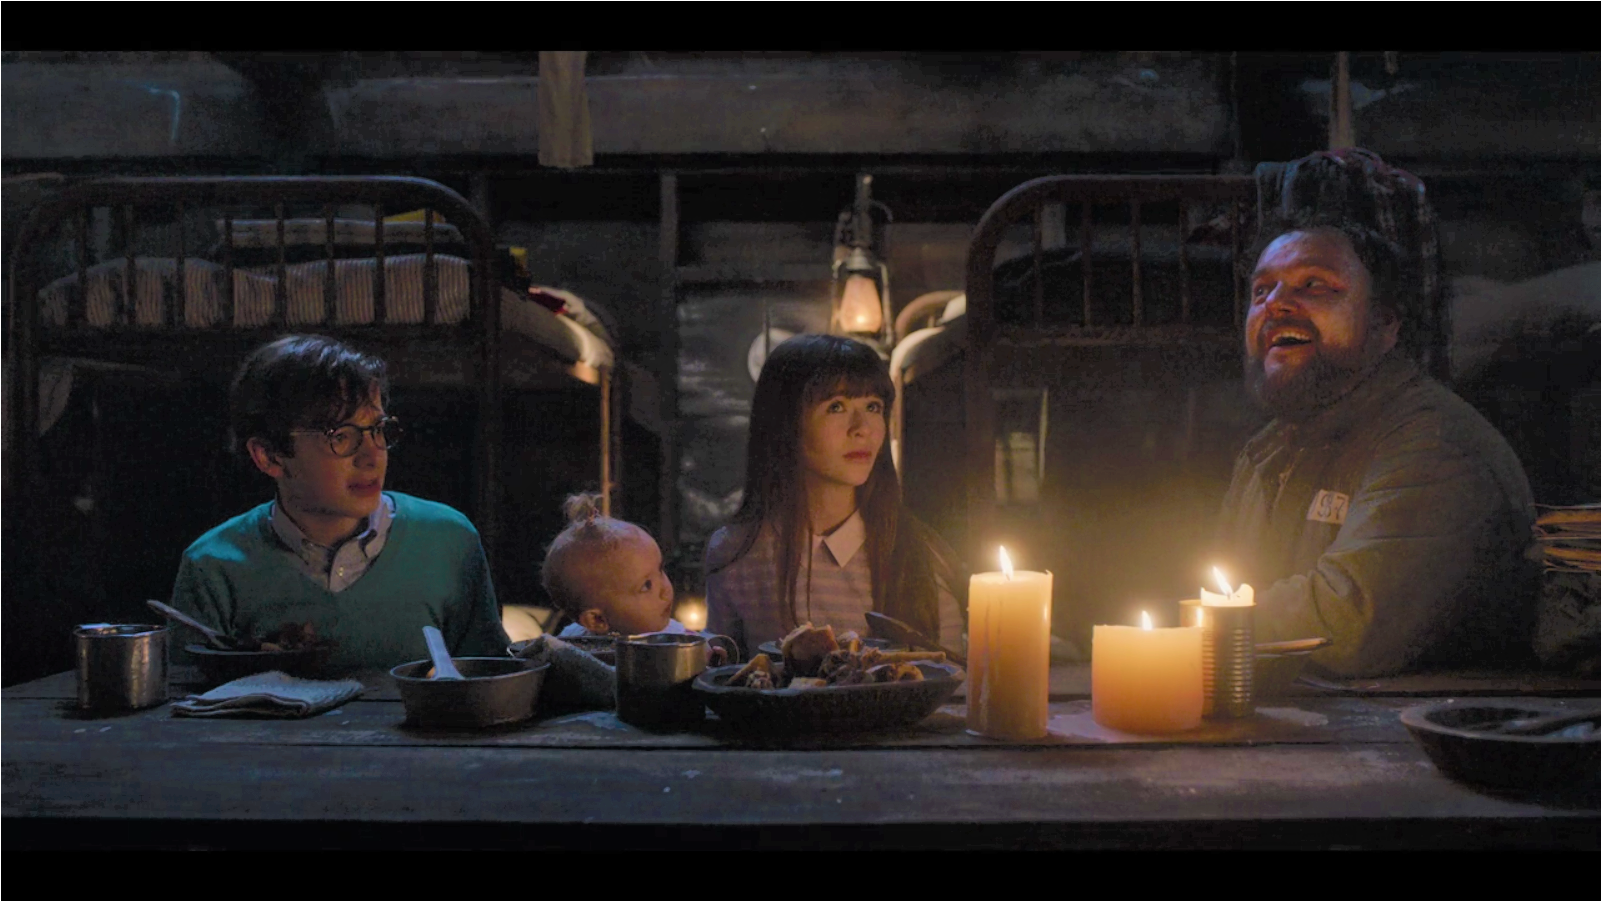 The Baudelaire orphans eating a terrible beef casserole in a dimly-lit room with an optimist and lots of coupons. (Obtained by questionable means from the Netflix corporation.)